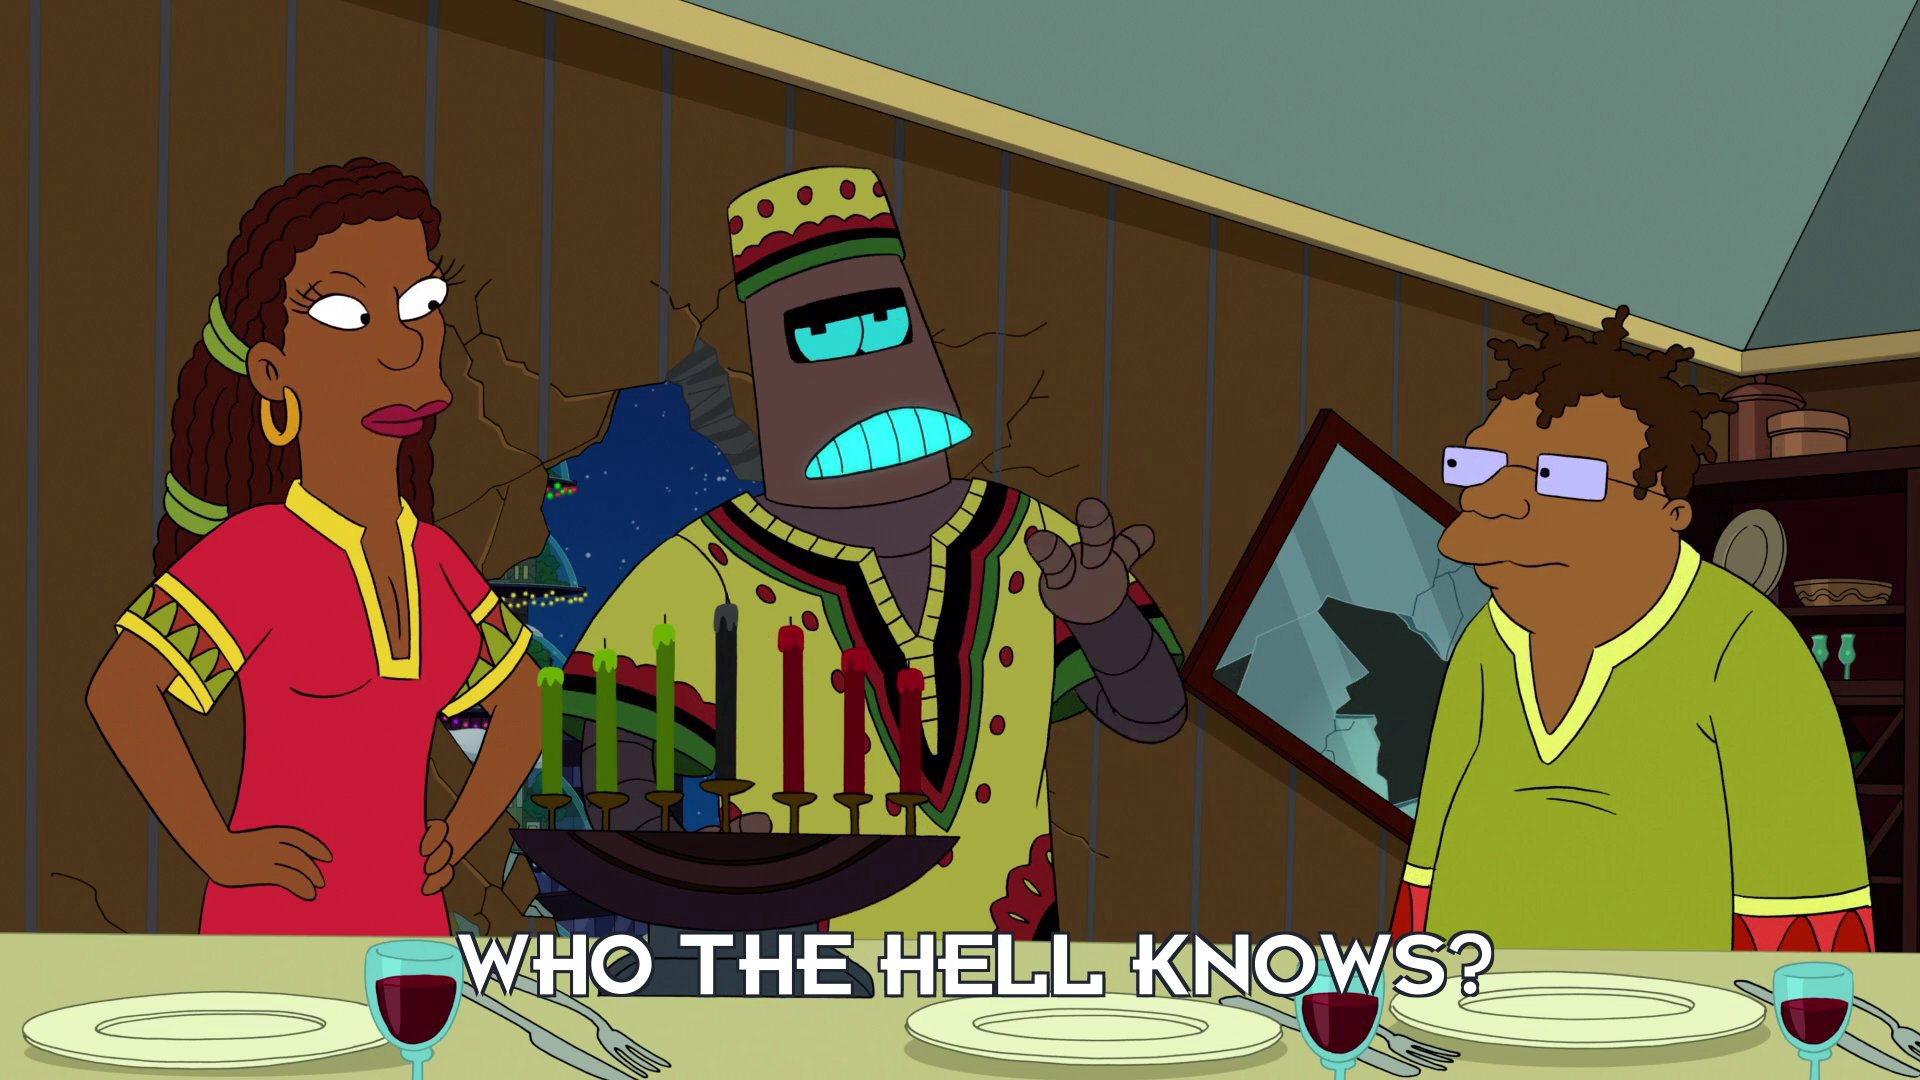 Kwanzaabot: Who the hell knows?